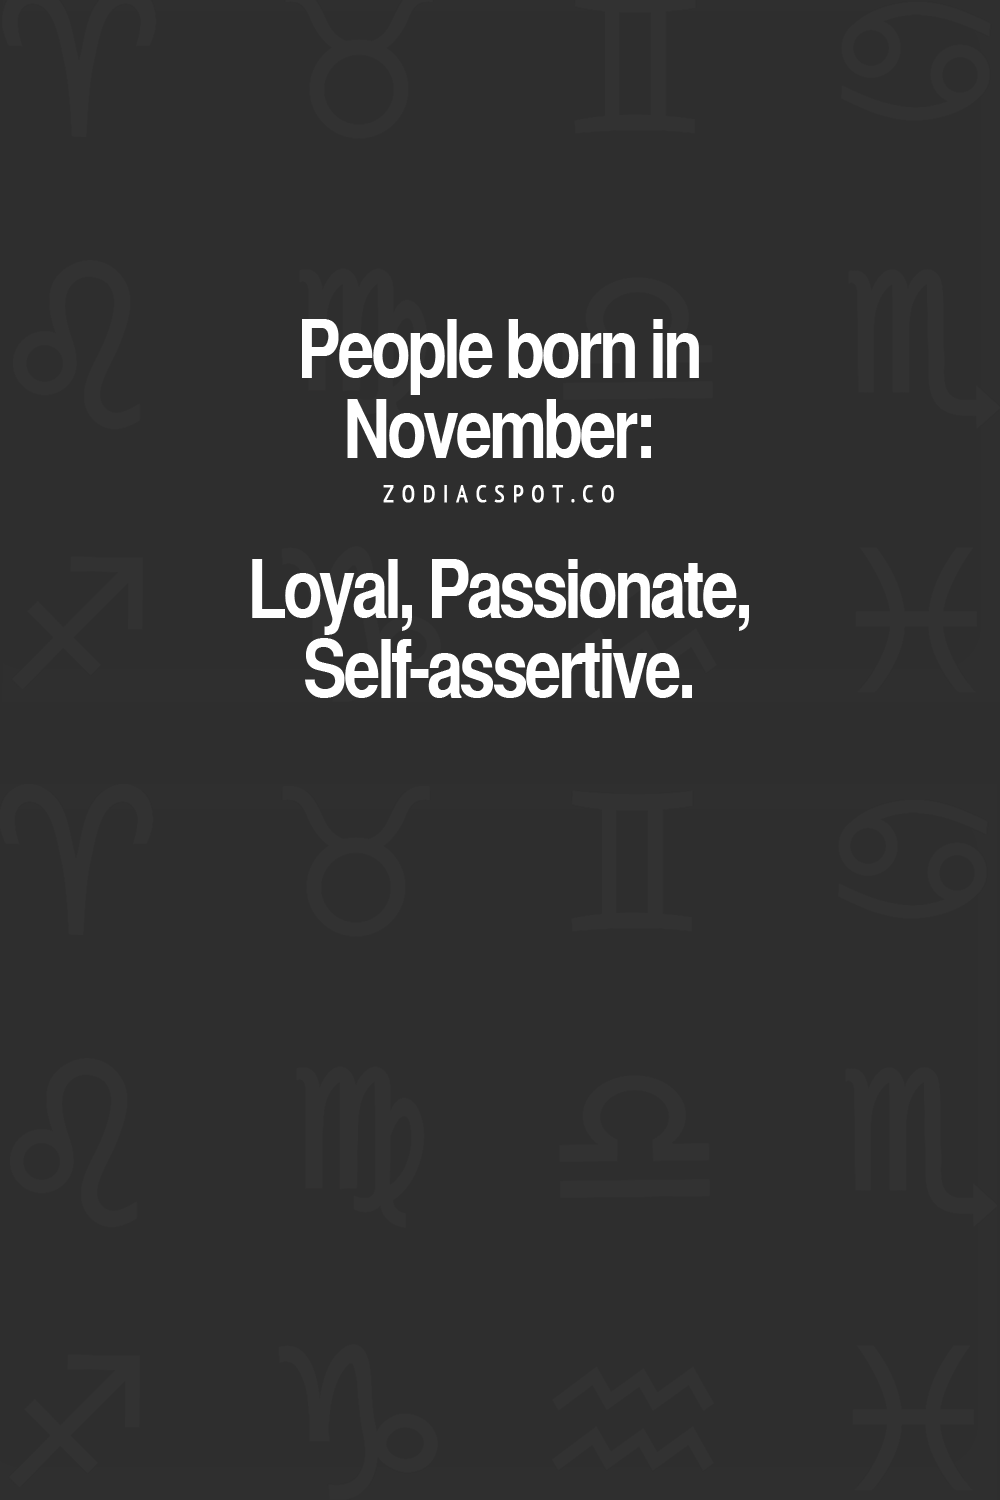 August birthday month my august birthday month quotes quotesgram - Zodiac Mind Your Source For Zodiac Facts Photo